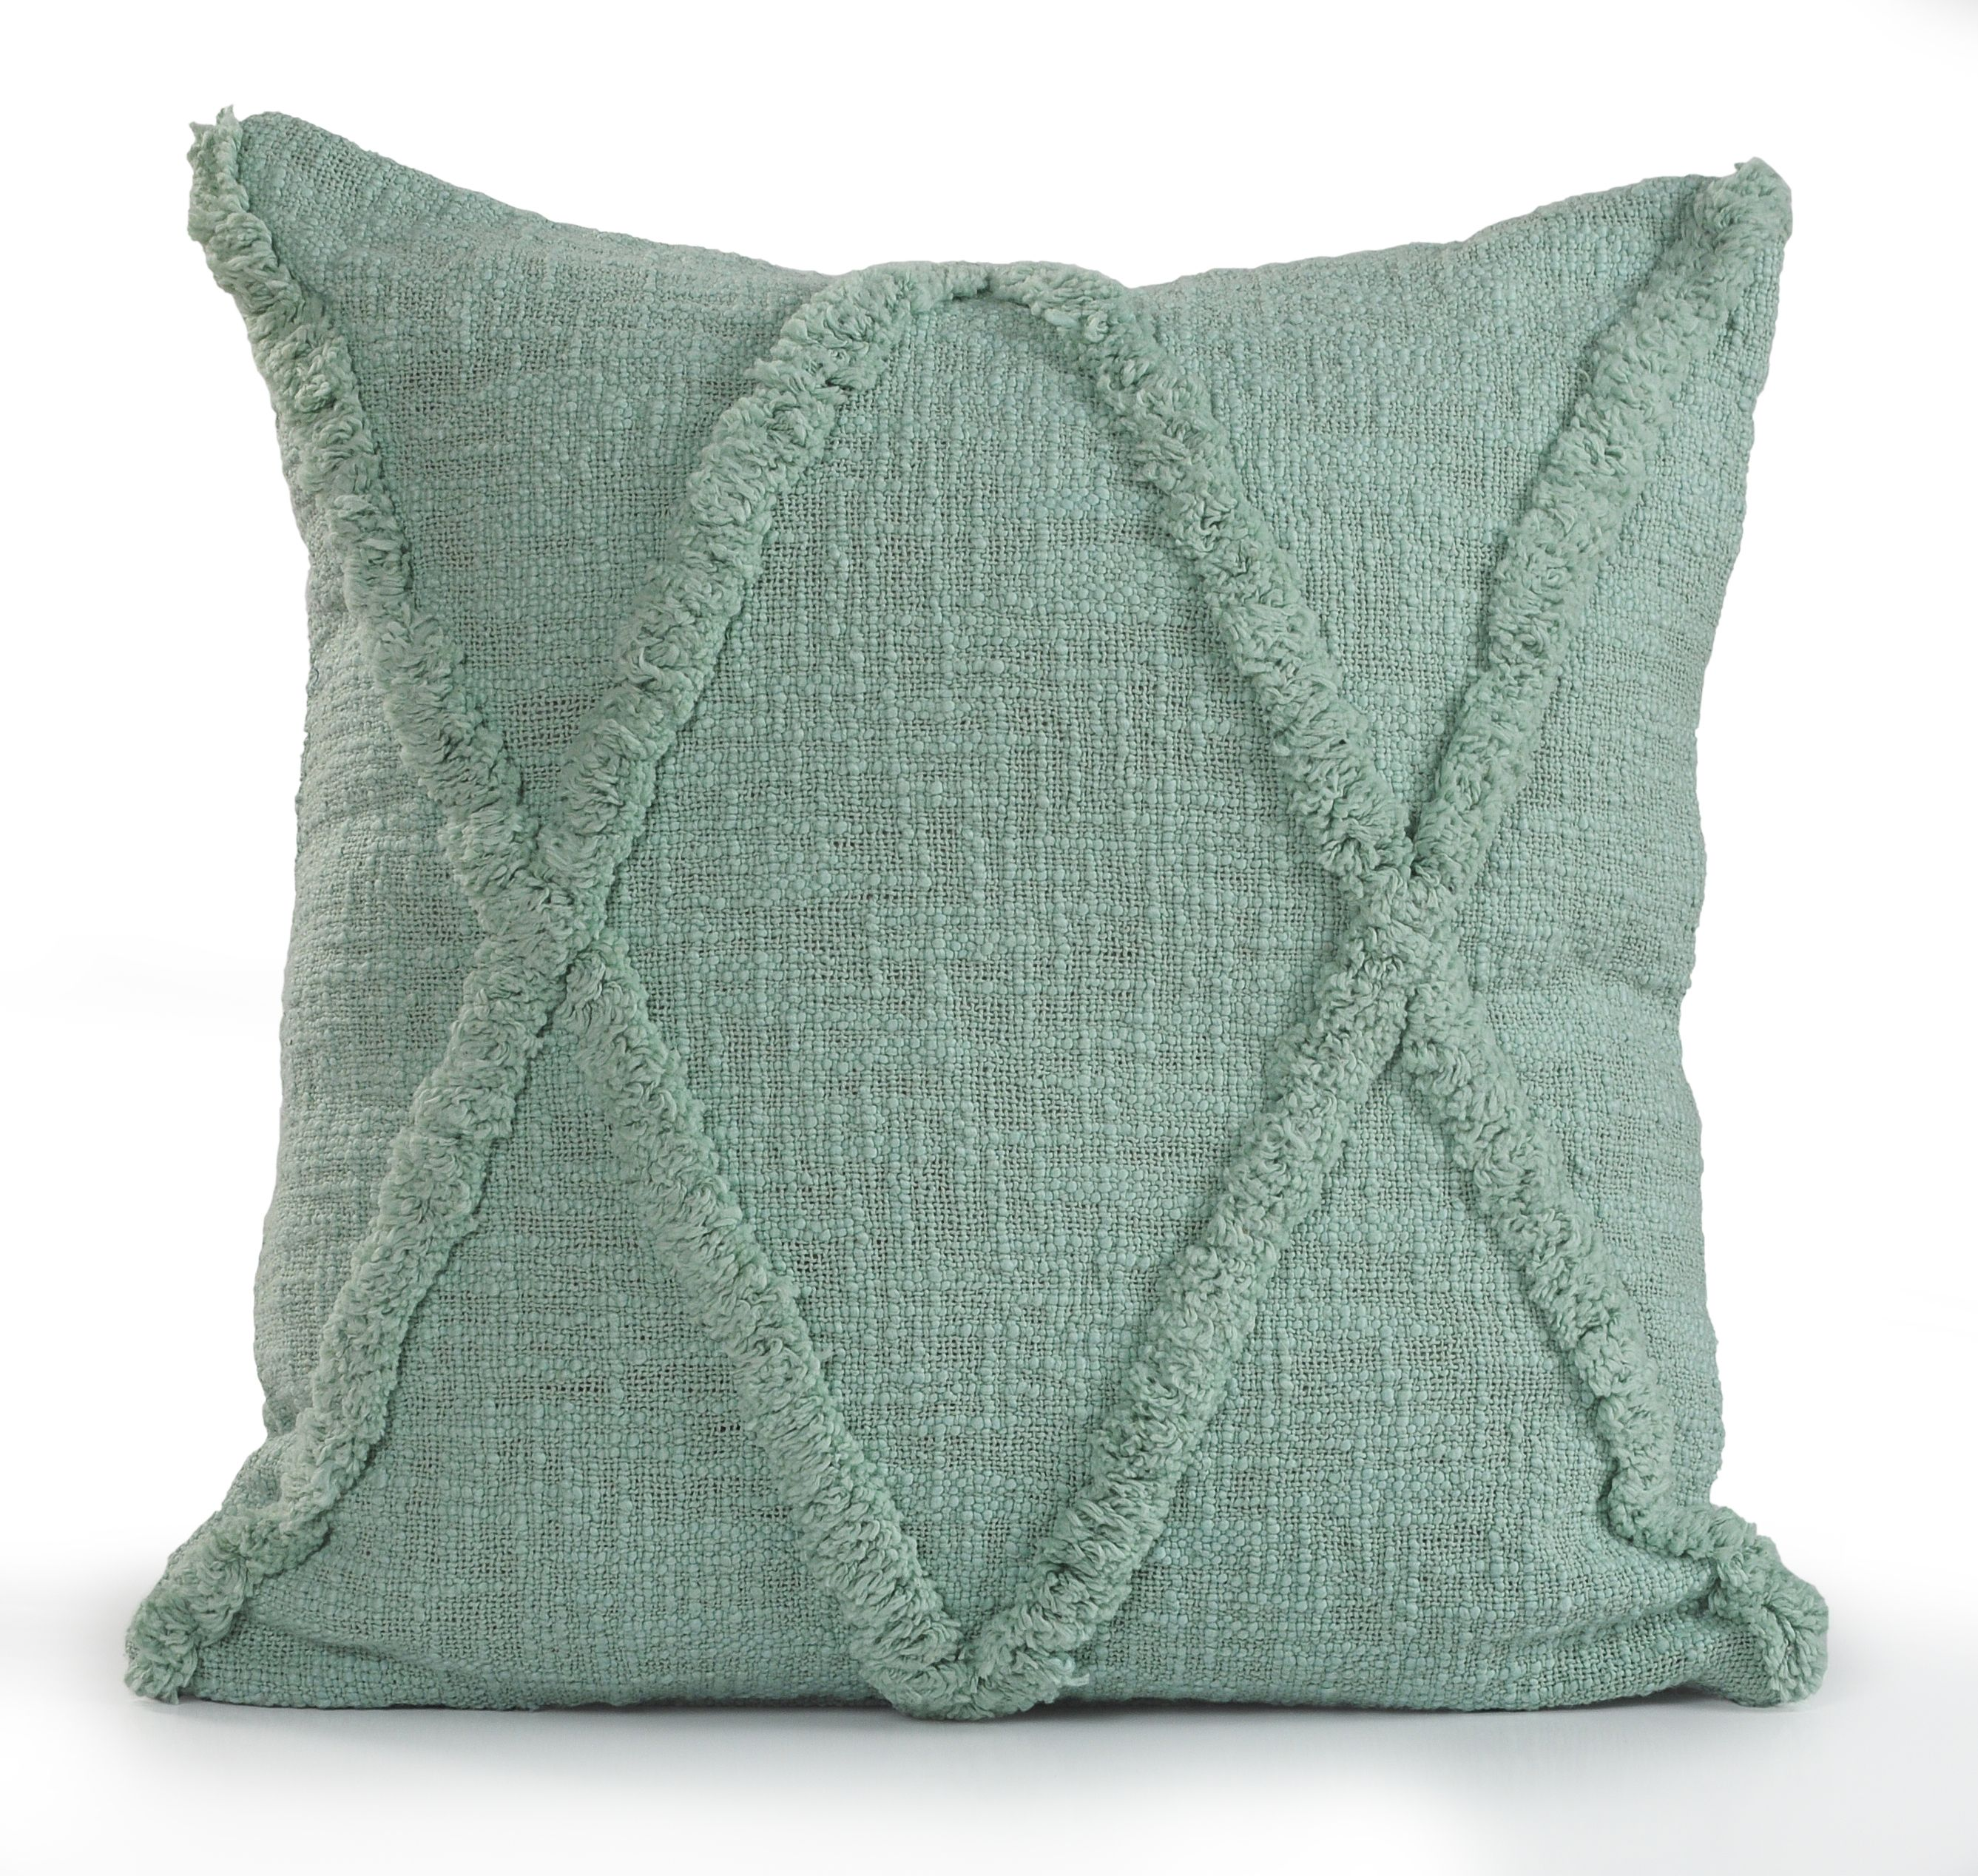 LR Home Criss Cross Fringed Solid Color 18 Inch Cotton Decorative Throw Pillow